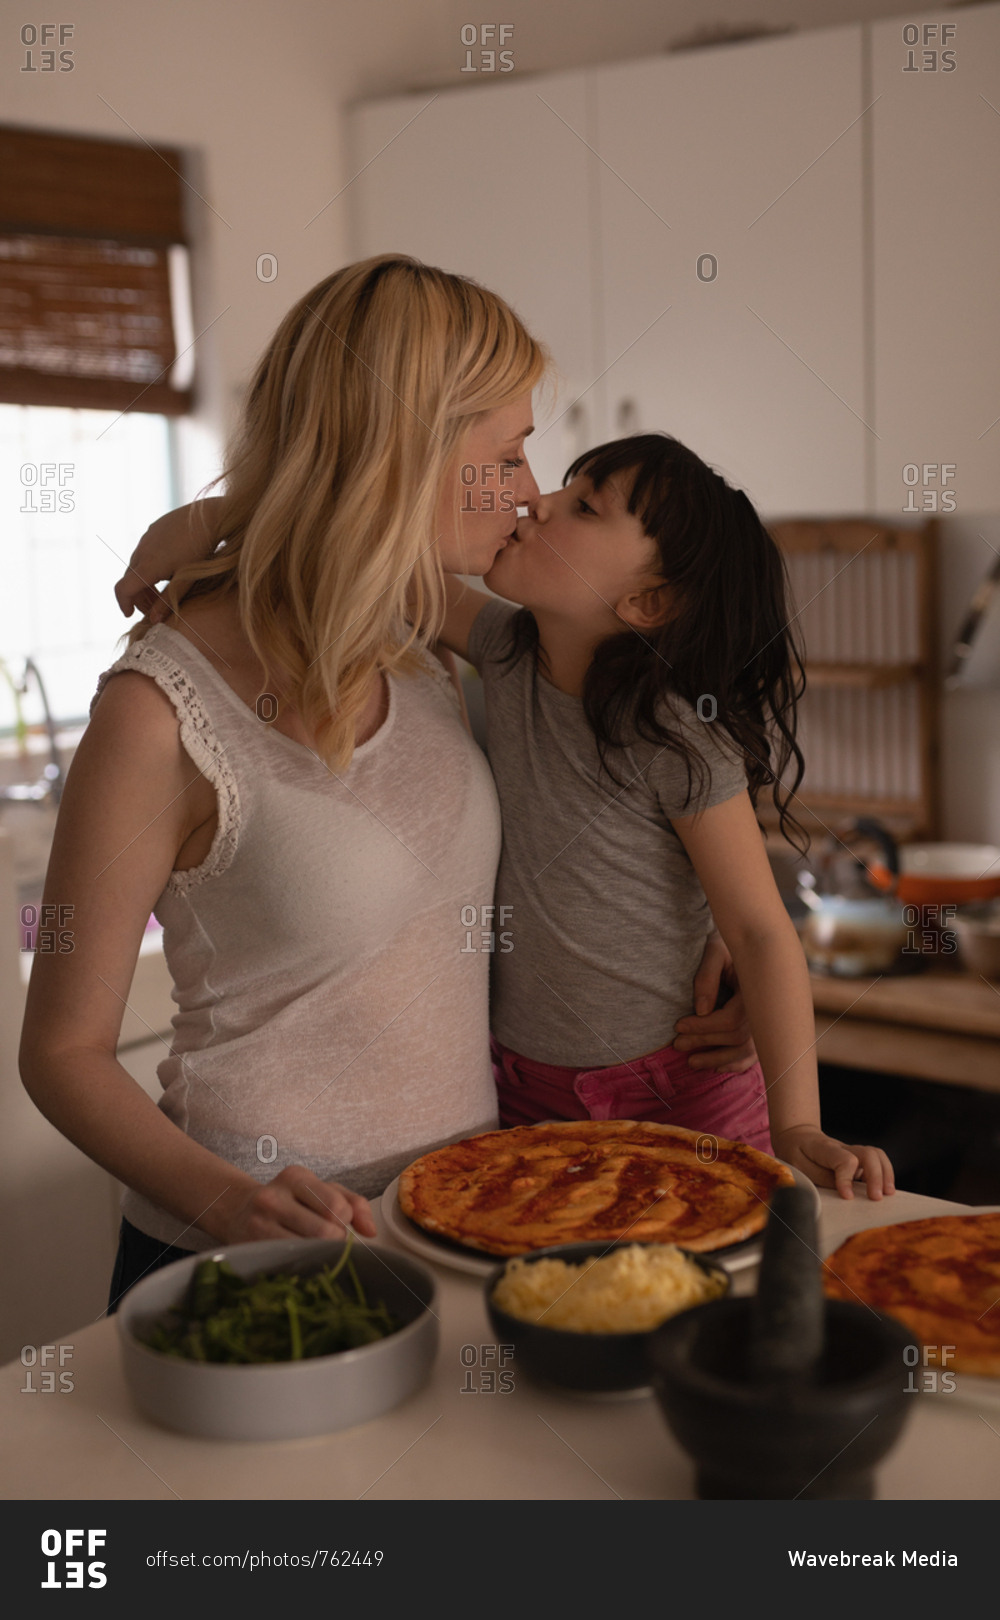 Lesbian Parents Stock Photos And Images